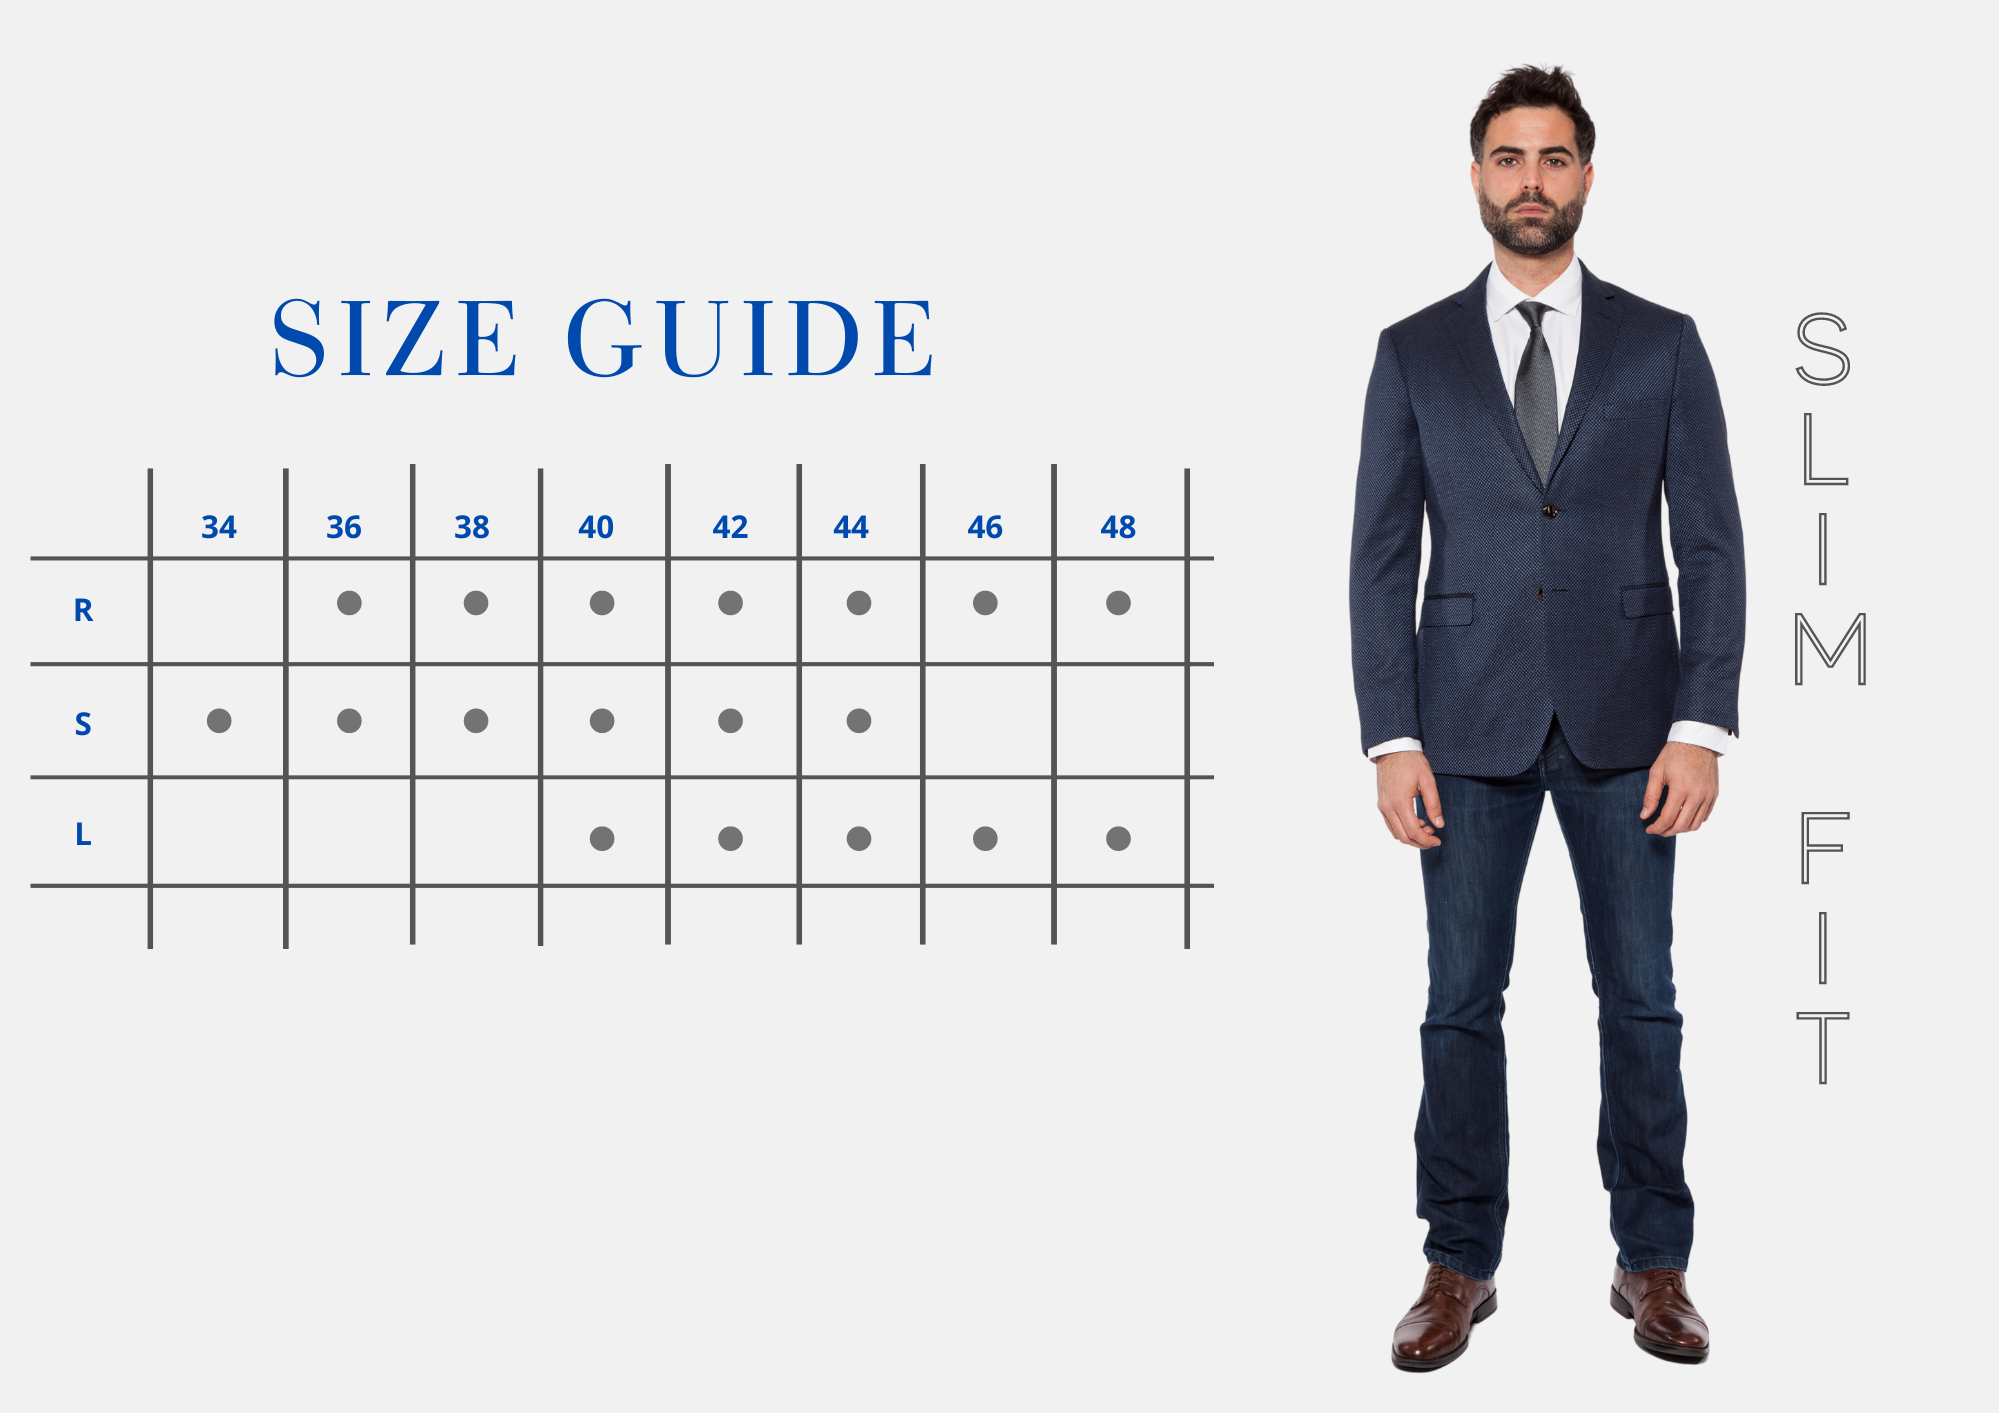 Marina Imports- Size Guide, Slim Fit